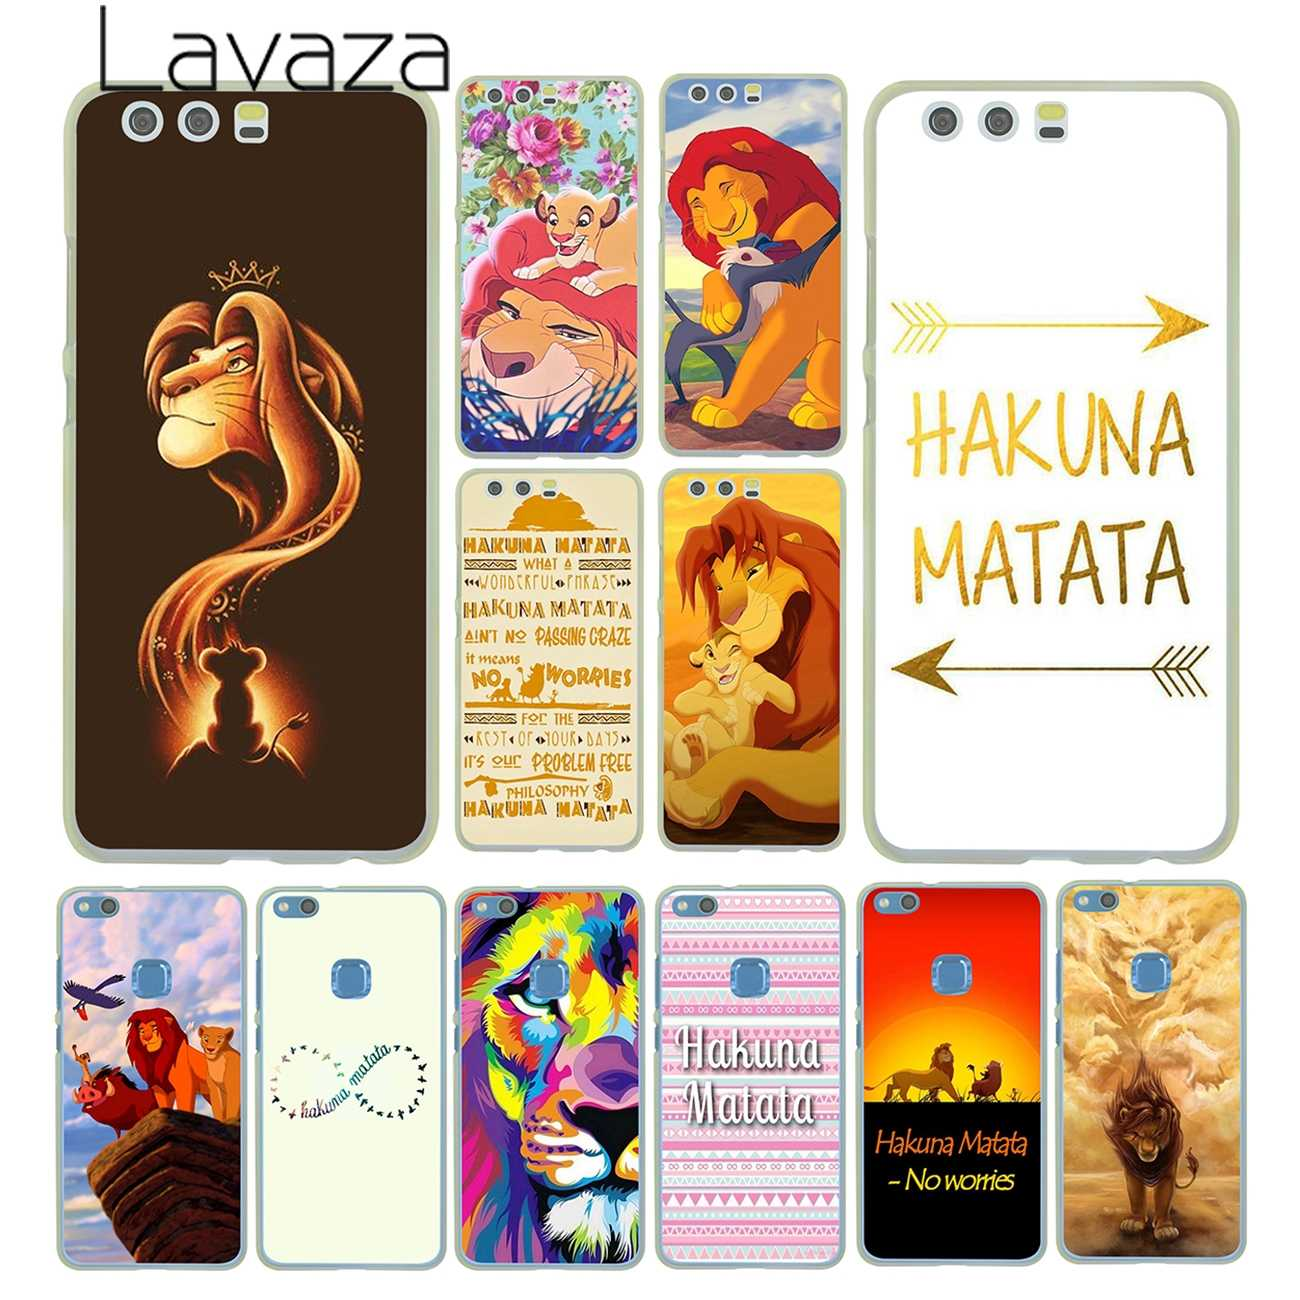 Lavaza The Hakuna Matata Lion King Case for Huawei P30 P20 Pro P9 P10 Plus P8 Lite Mini 2016 2017 P smart Z 2019 Cover